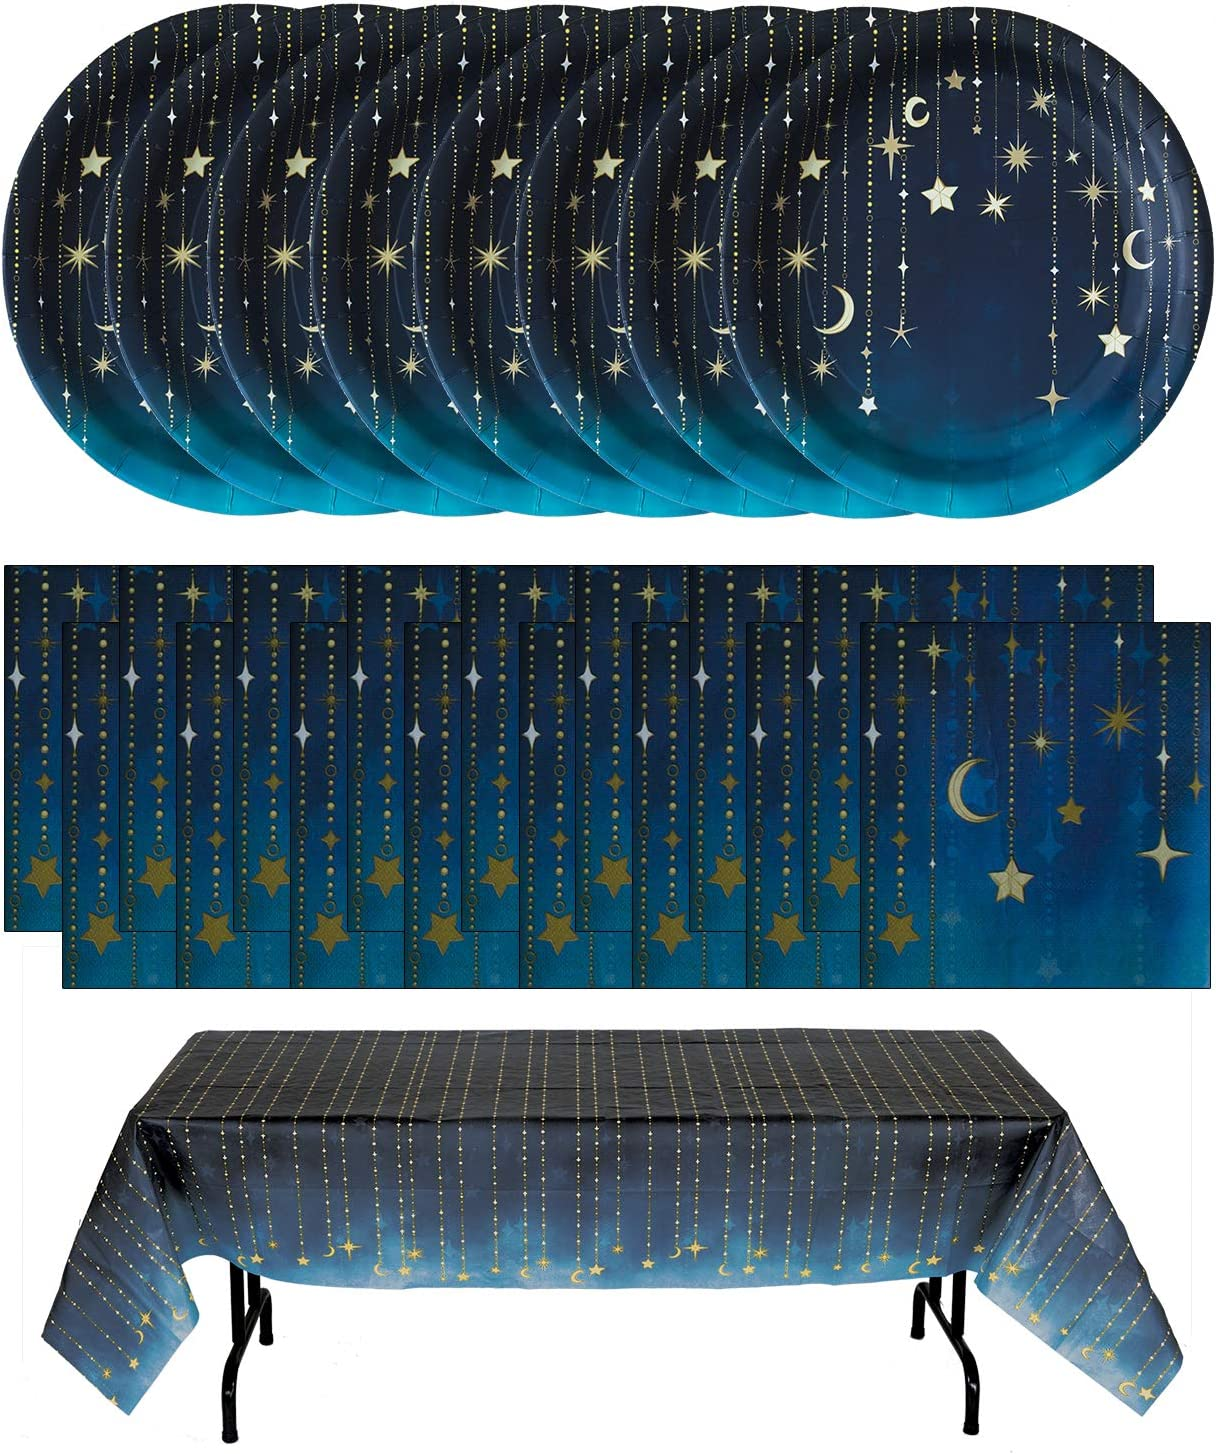 Havercamp Starry Night Party Bundle   Plates, Table Cover, Napkins   Great for Themed Birthday Party, Science Fair, Graduation Celebration